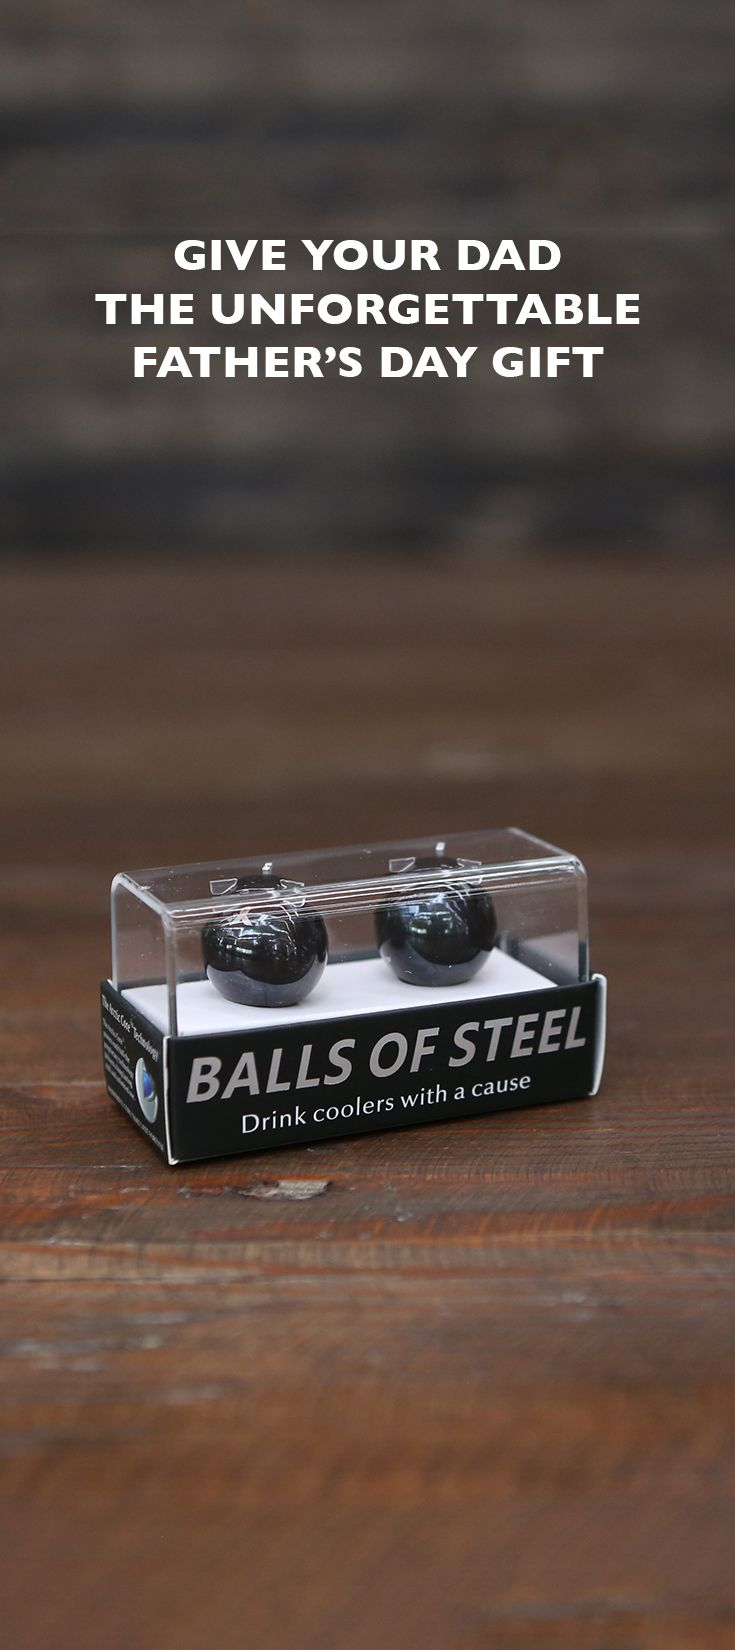 Balls of steel whiskey chillers products pinterest dads steel